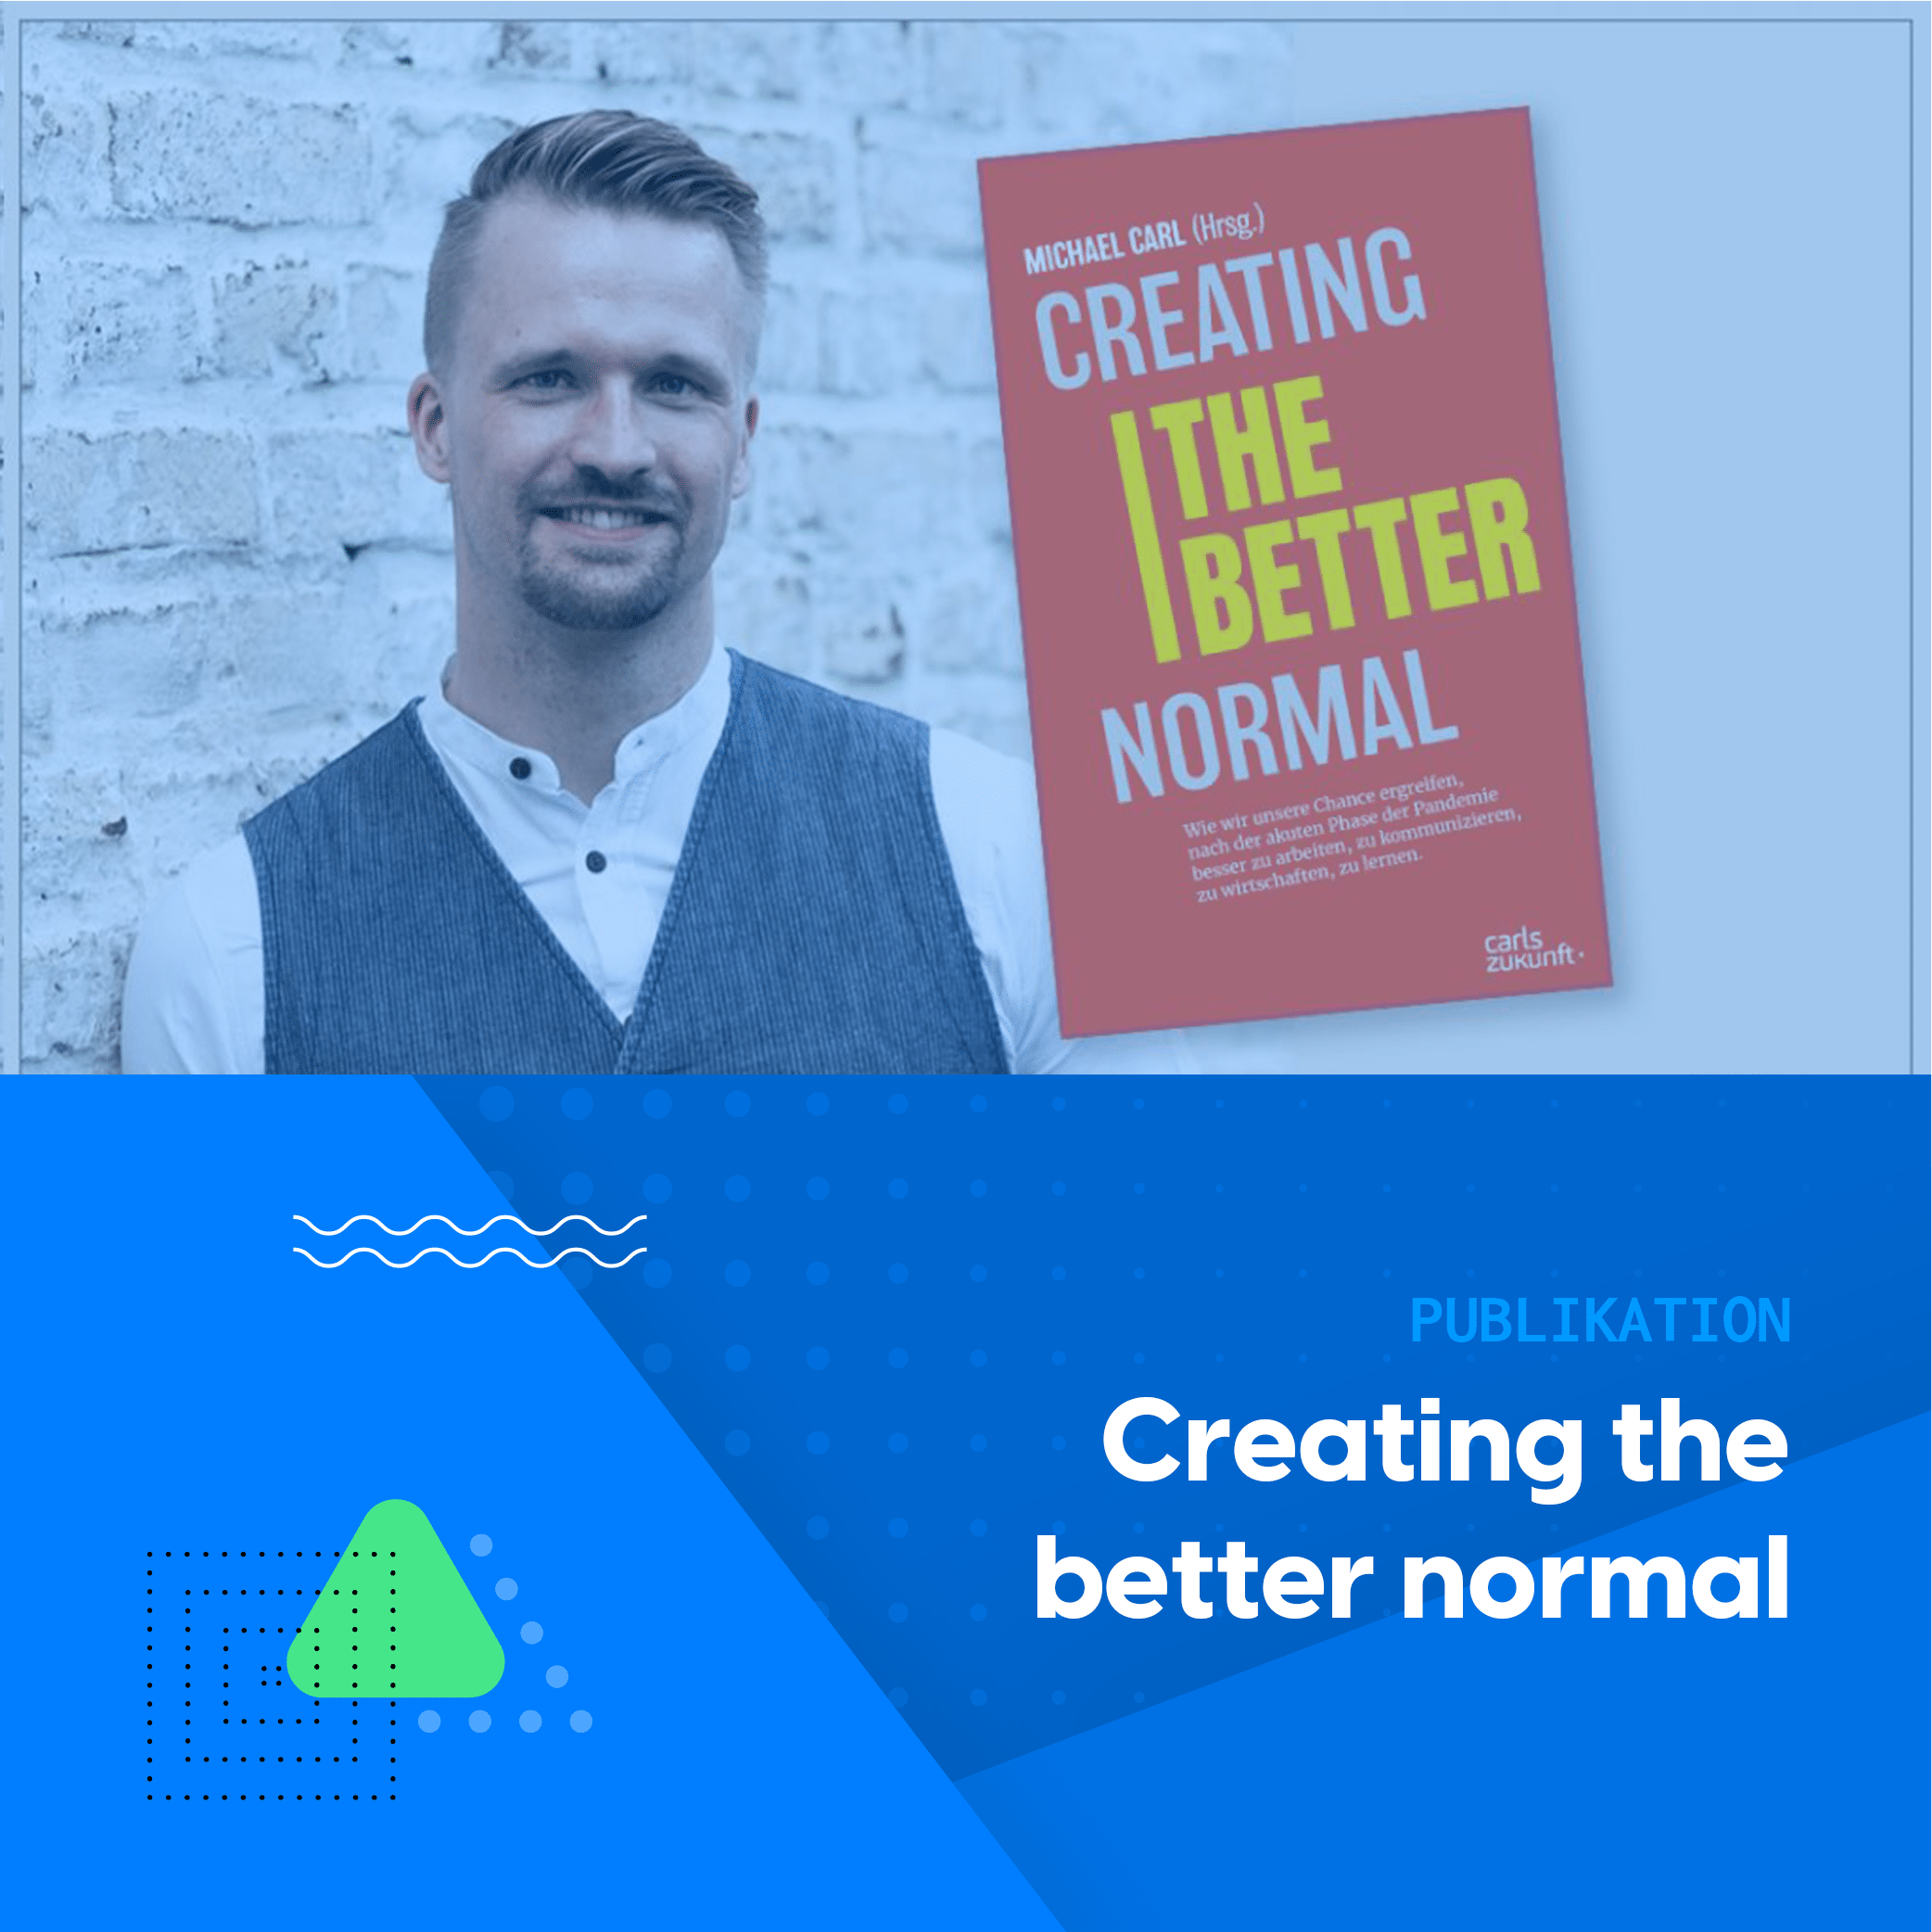 Creating the better normal